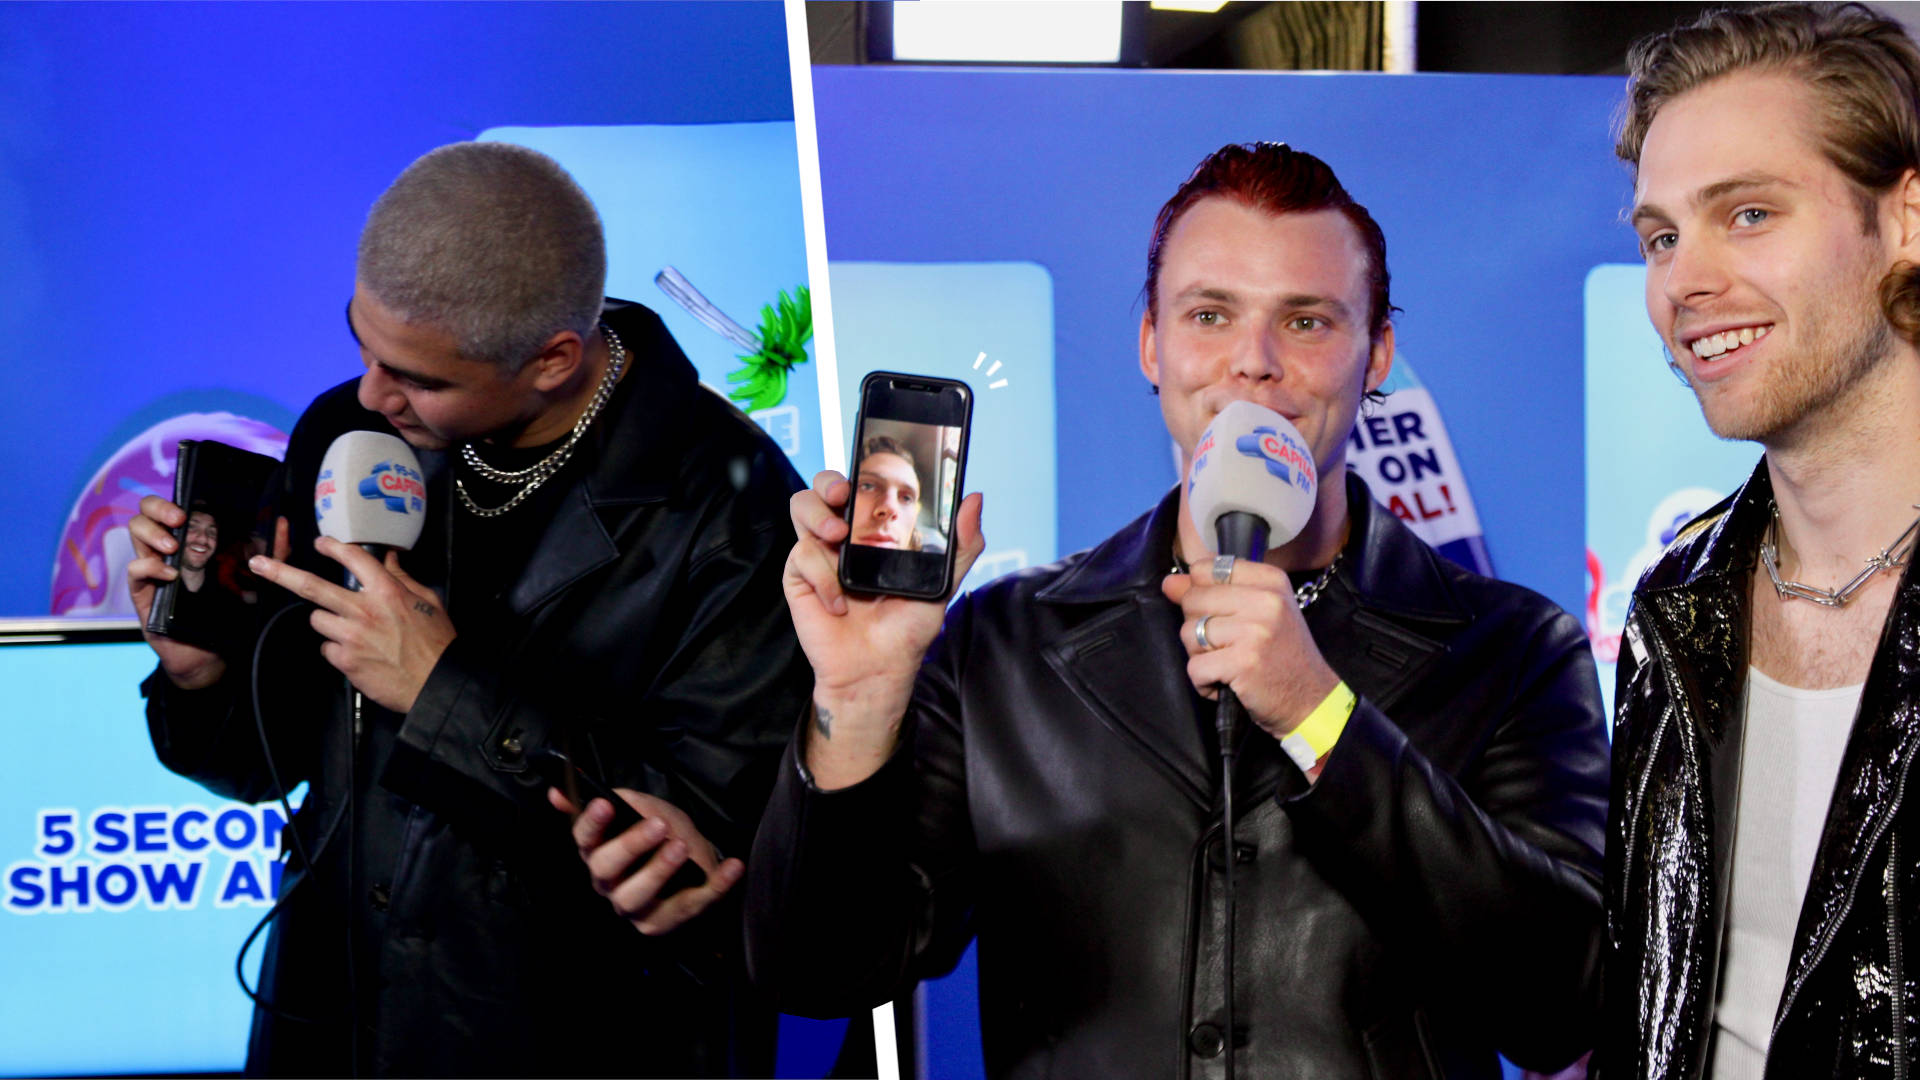 WATCH: 5SOS Swap Phones And Go Through Each Other's Camera Rolls